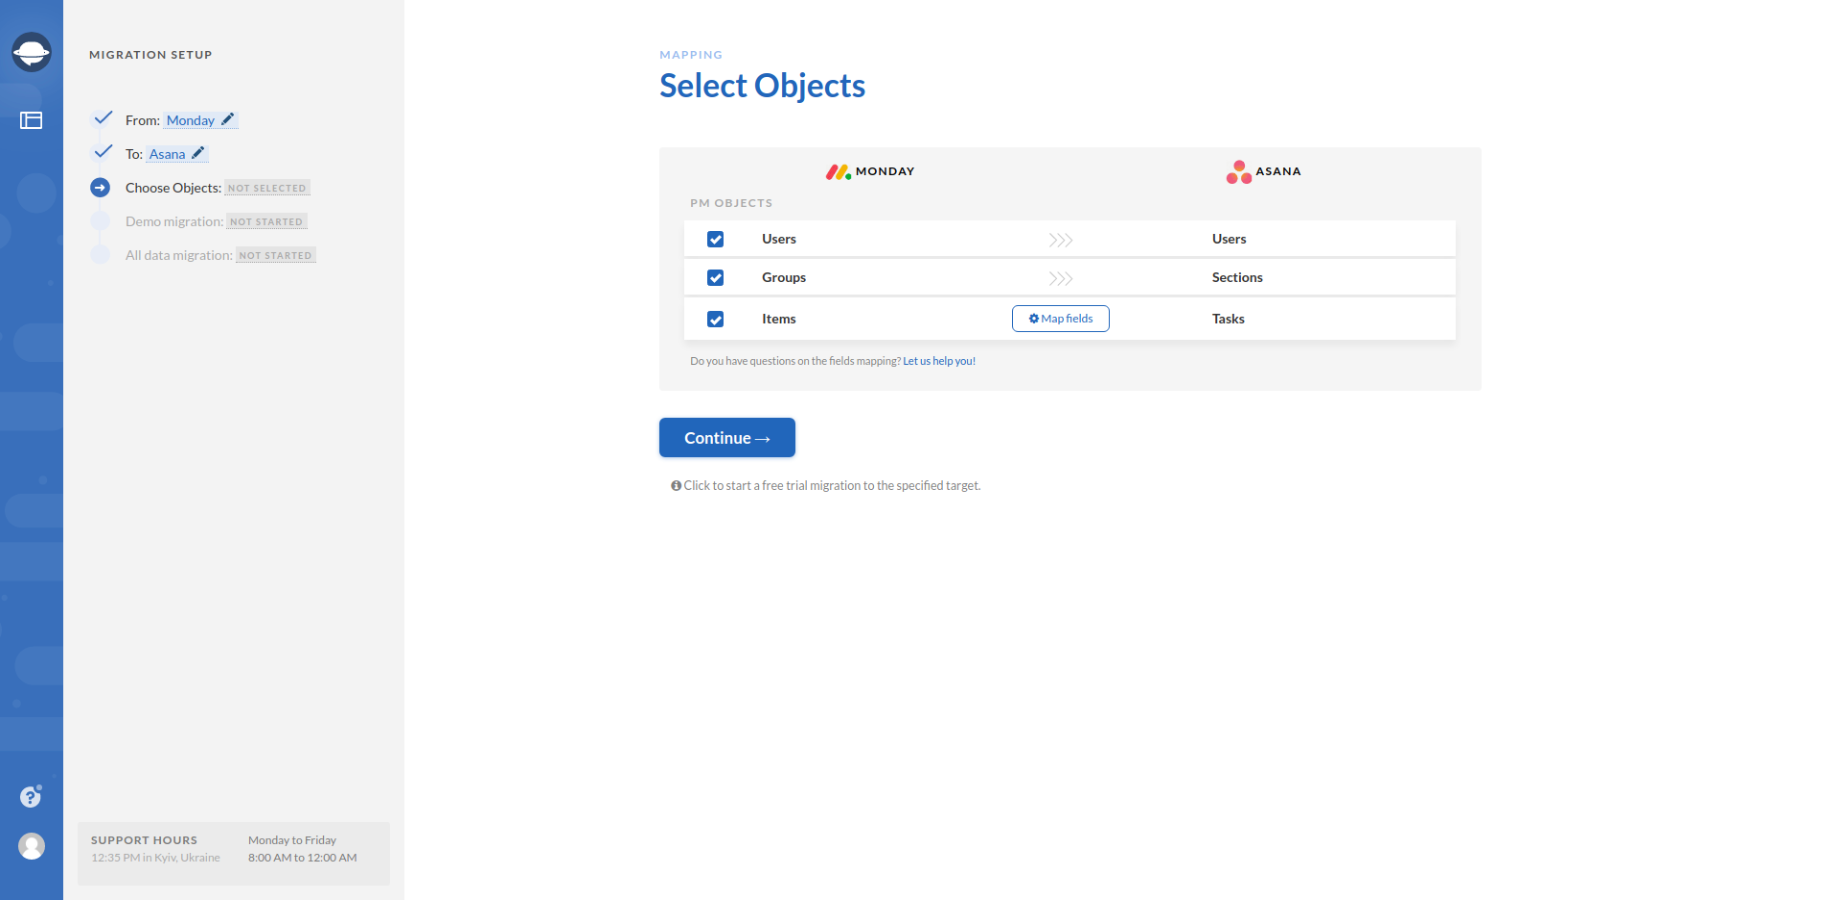 Selecting Objects for Monday Export